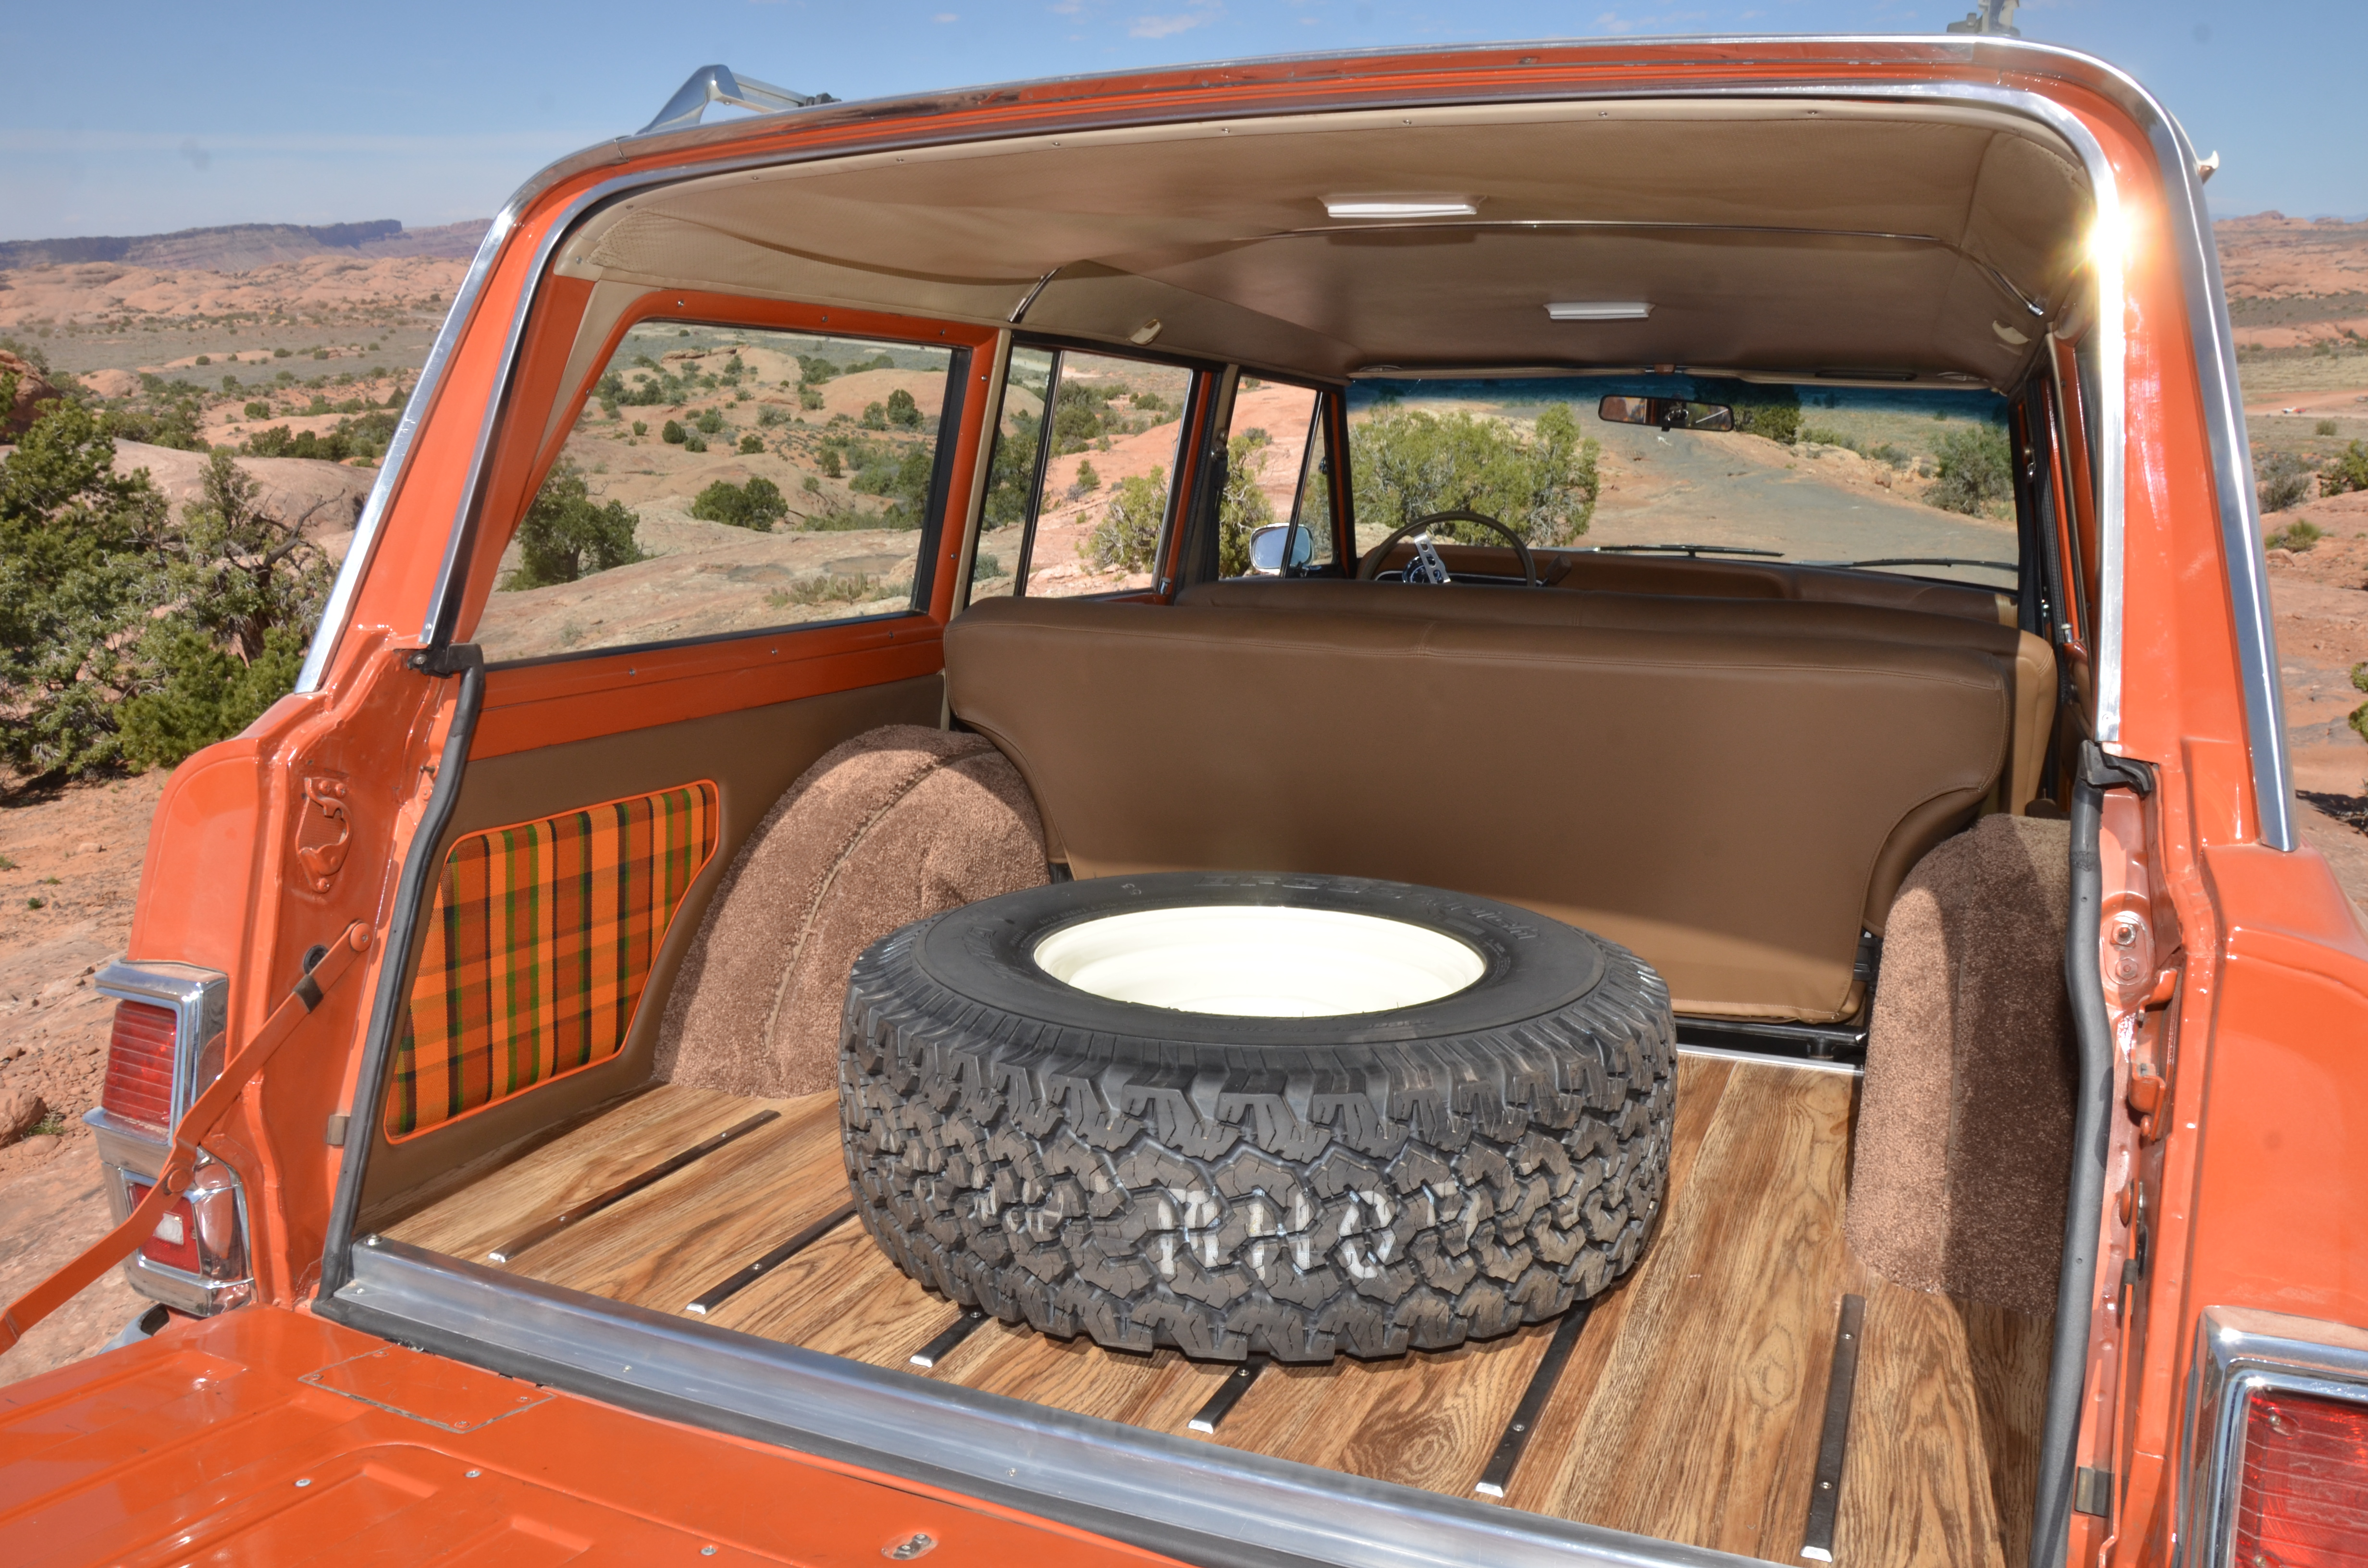 The spare tire is floor-mounted over vinyl wood that planks the rear compartment and is accented with chrome strips.